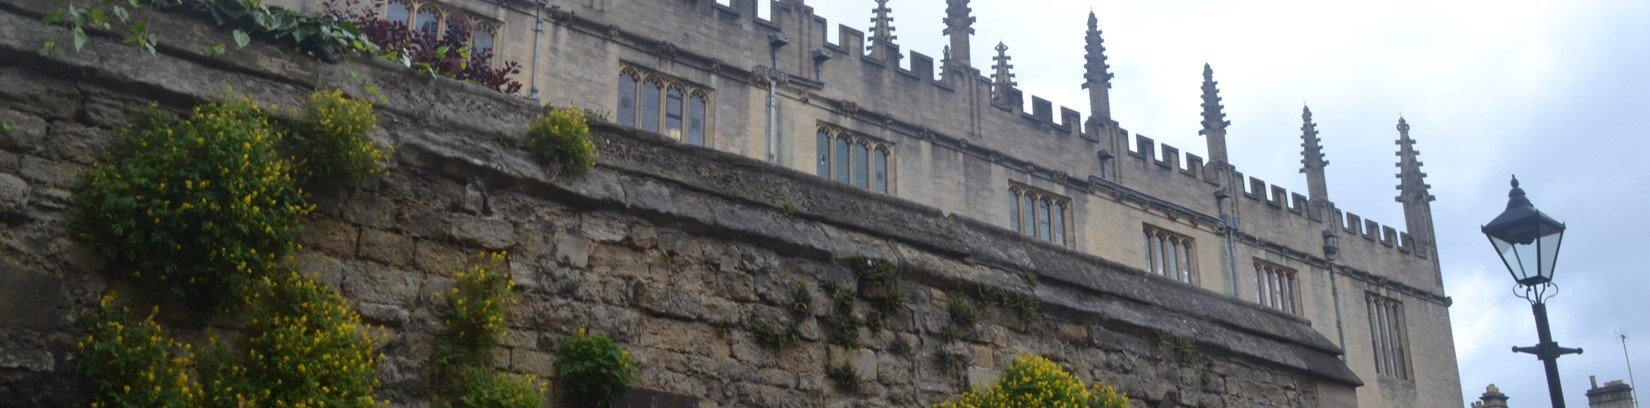 A view of the Bodleian